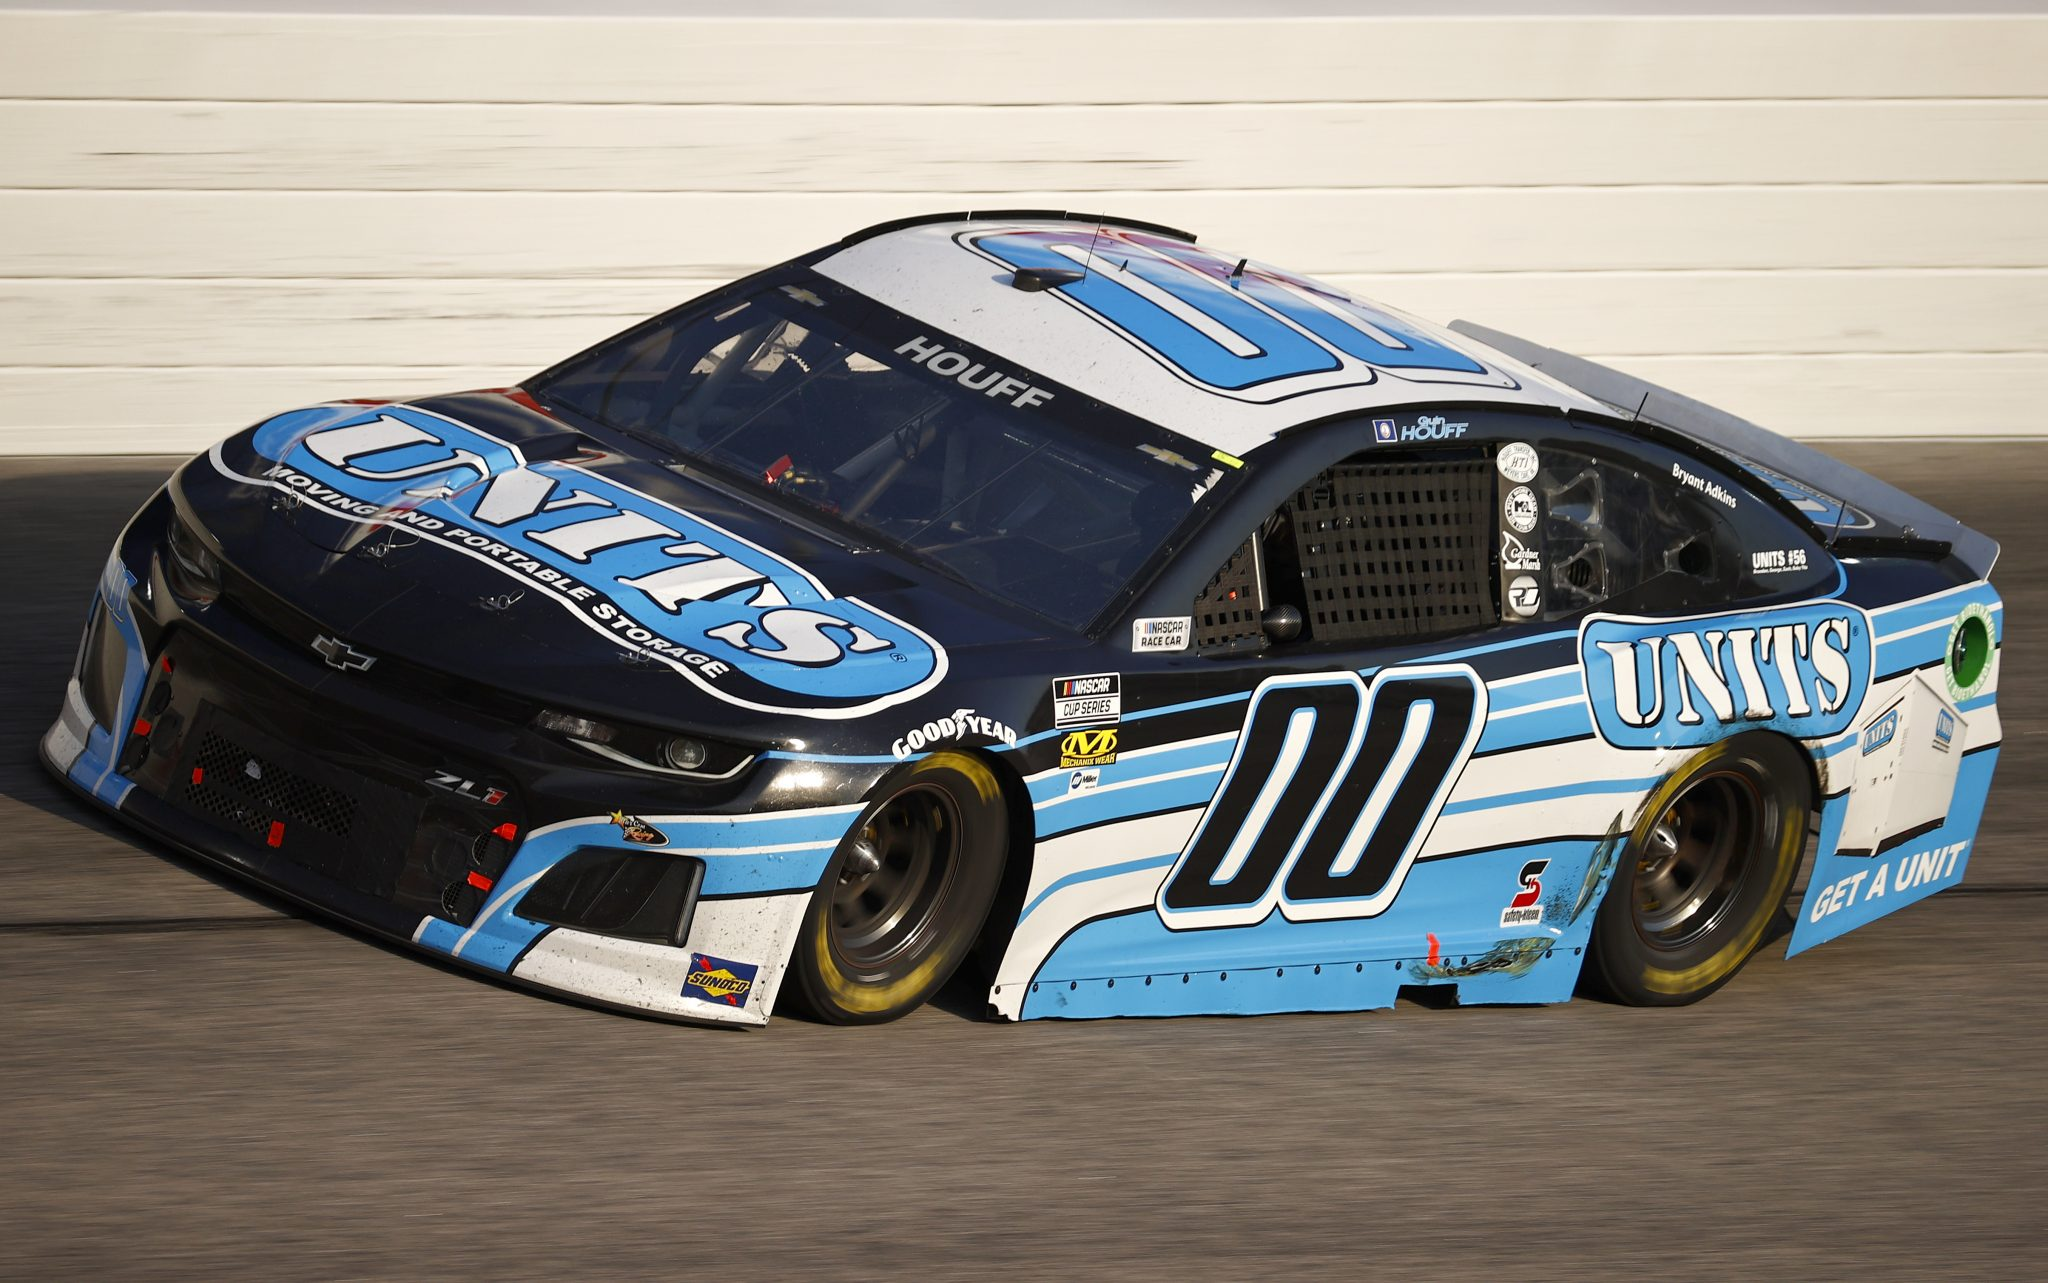 DARLINGTON, SOUTH CAROLINA - SEPTEMBER 05: Quin Houff, driver of the #00 UNITS Chevrolet, drives during the NASCAR Cup Series Cook Out Southern 500 at Darlington Raceway on September 05, 2021 in Darlington, South Carolina. (Photo by Jared C. Tilton/Getty Images)   Getty Images